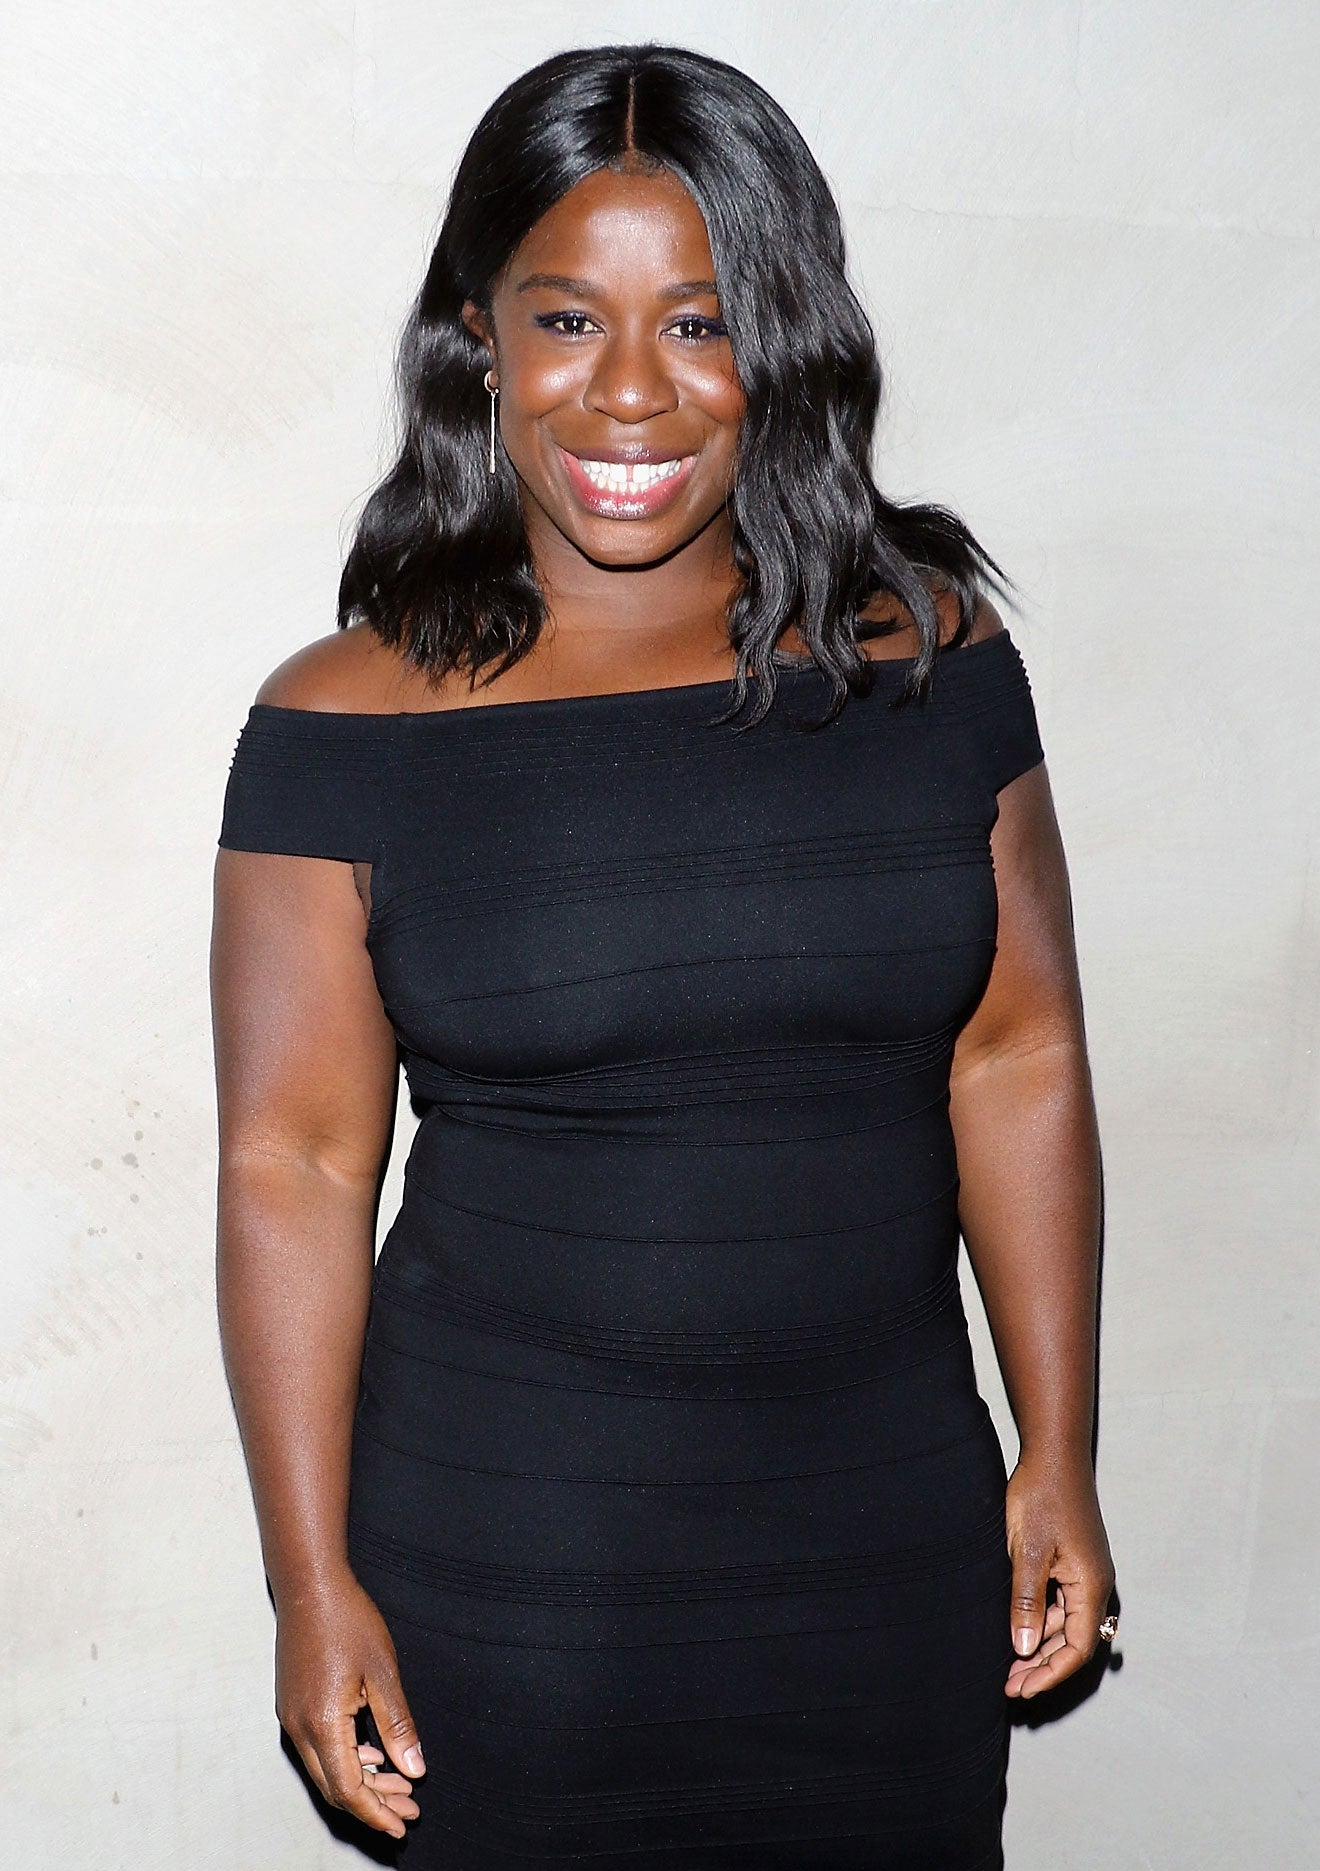 Uzo Aduba Defends Taylor Swift: 'She's a Beautiful Person and Strong'